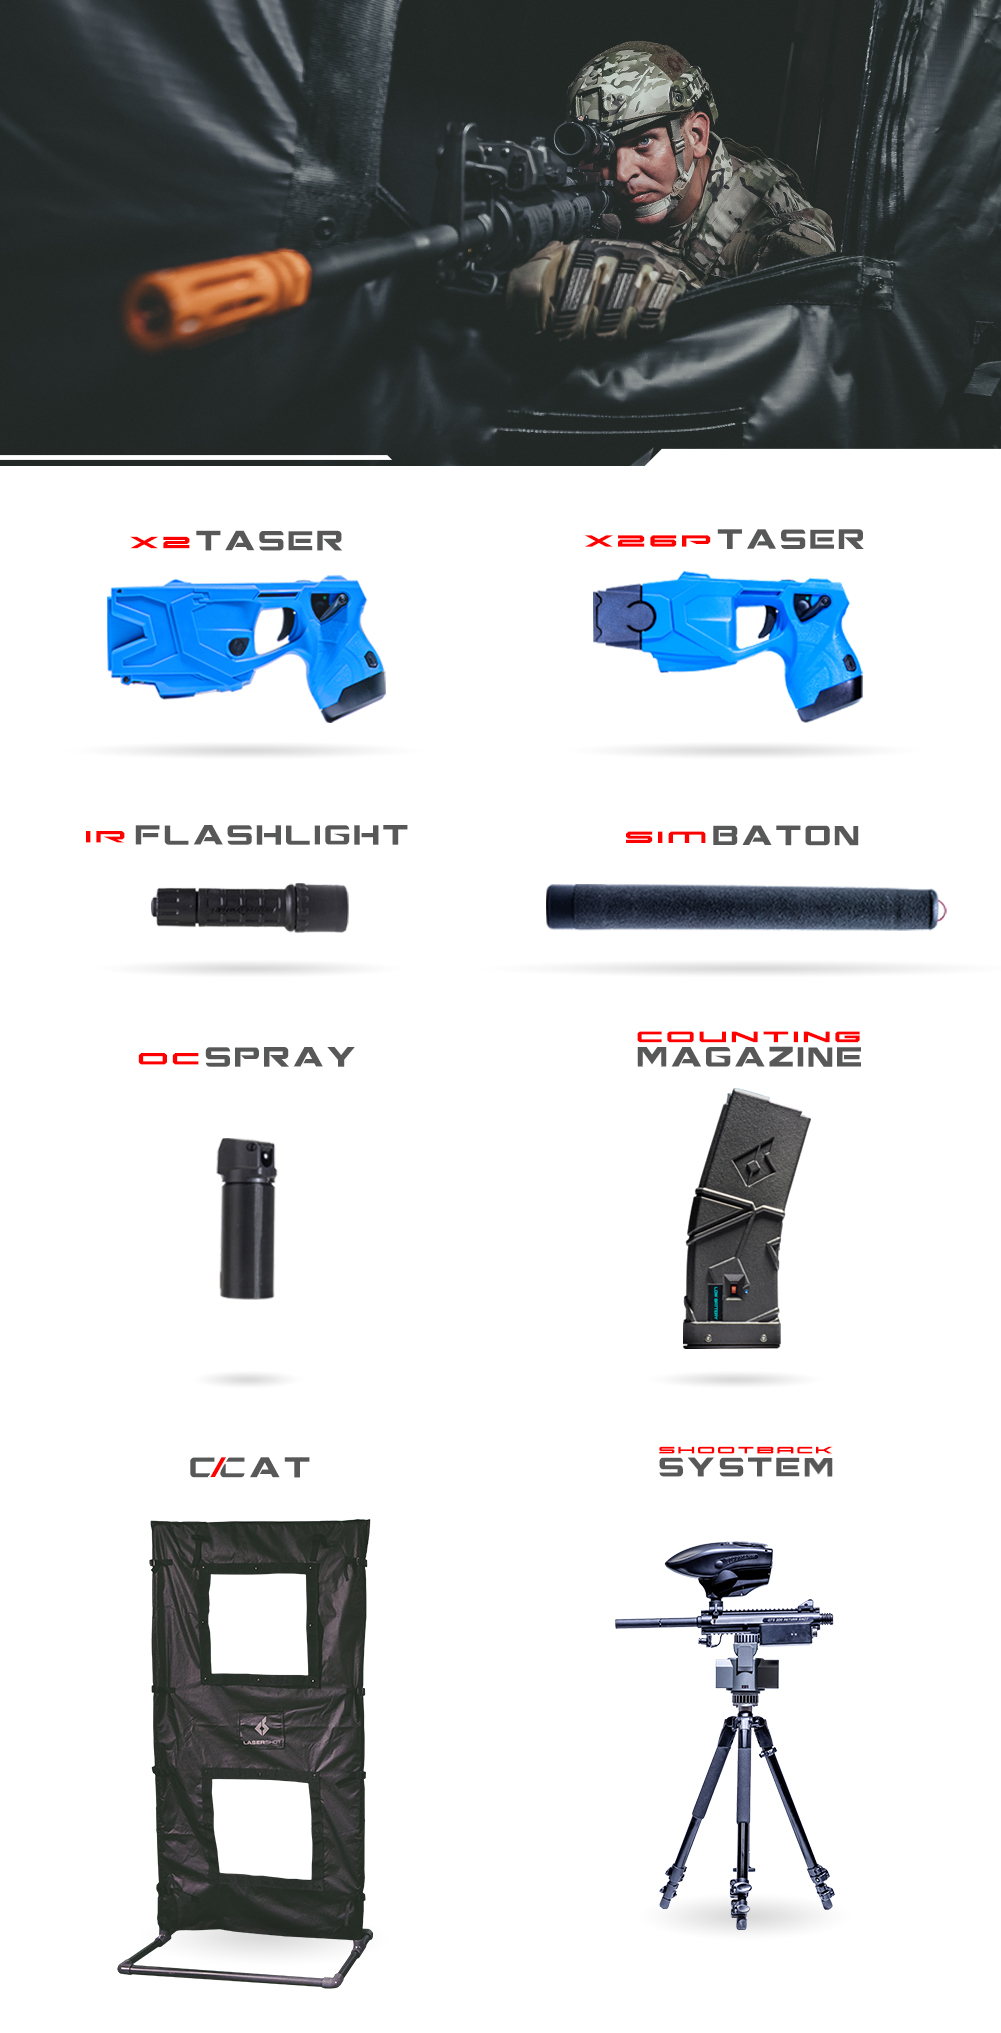 Non Lethal Weapons Graphic MIL